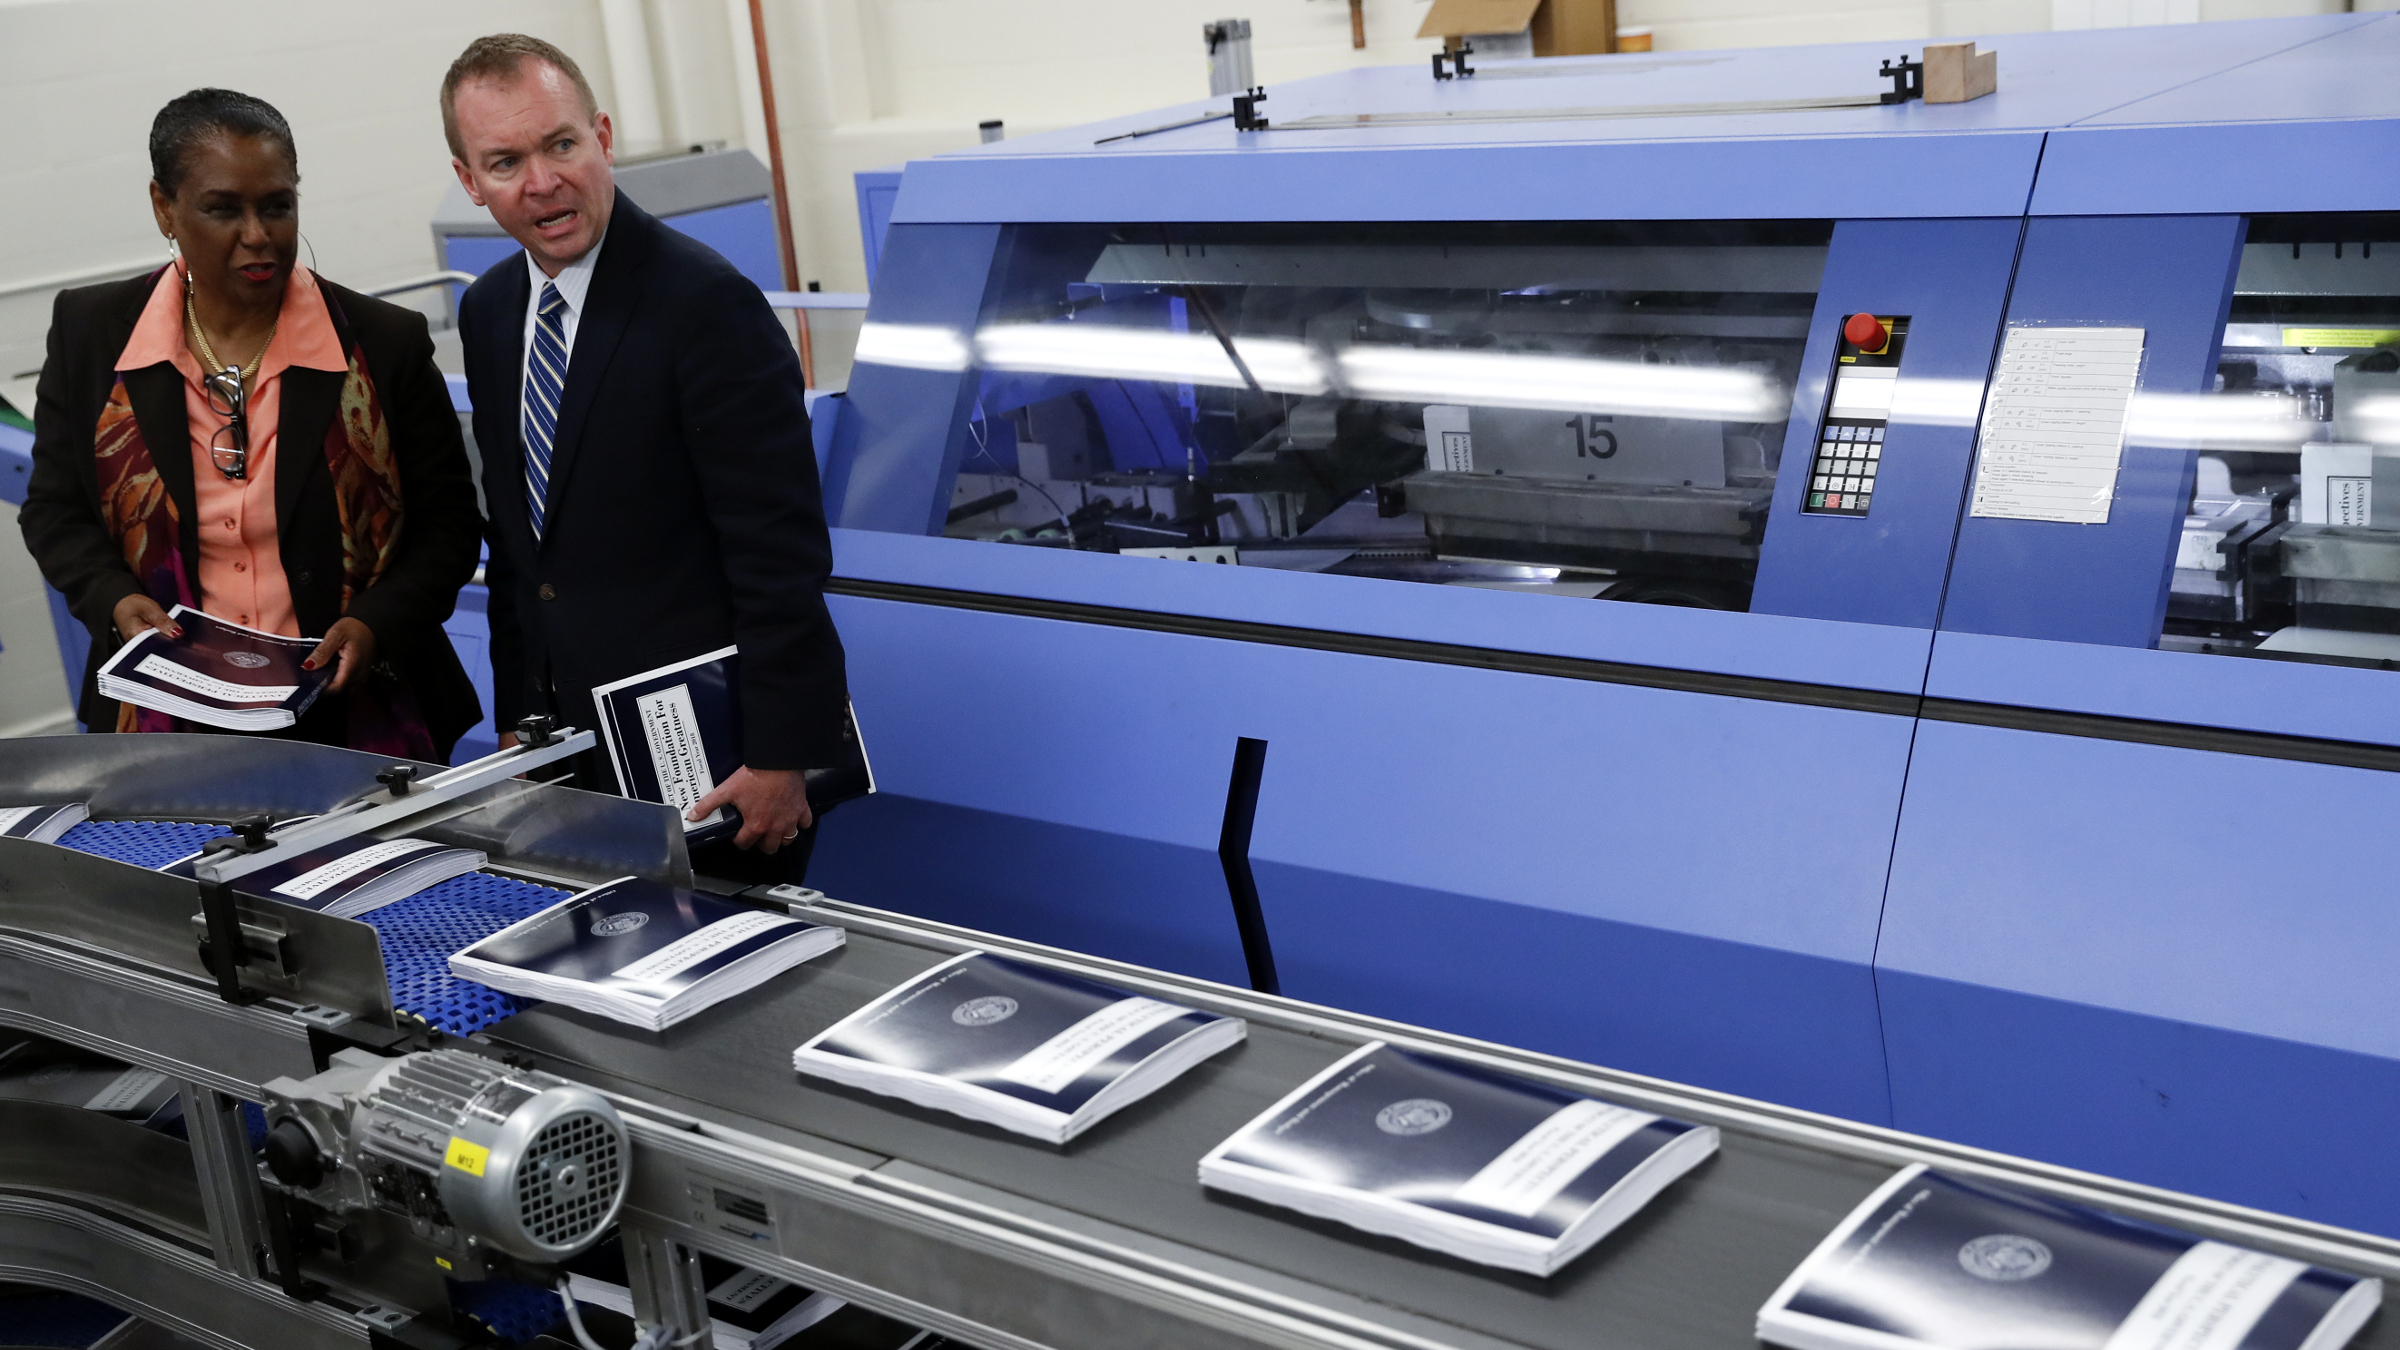 White House budget director Mick Mulvaney, right, joined by GPO Director Davita Vance-Cooks, inspects the production run of President Donald Trump's fiscal 2018 federal budget, Friday, May 19, 2017, at the U.S. Government Publishing Office's (GPO) plant Washington.